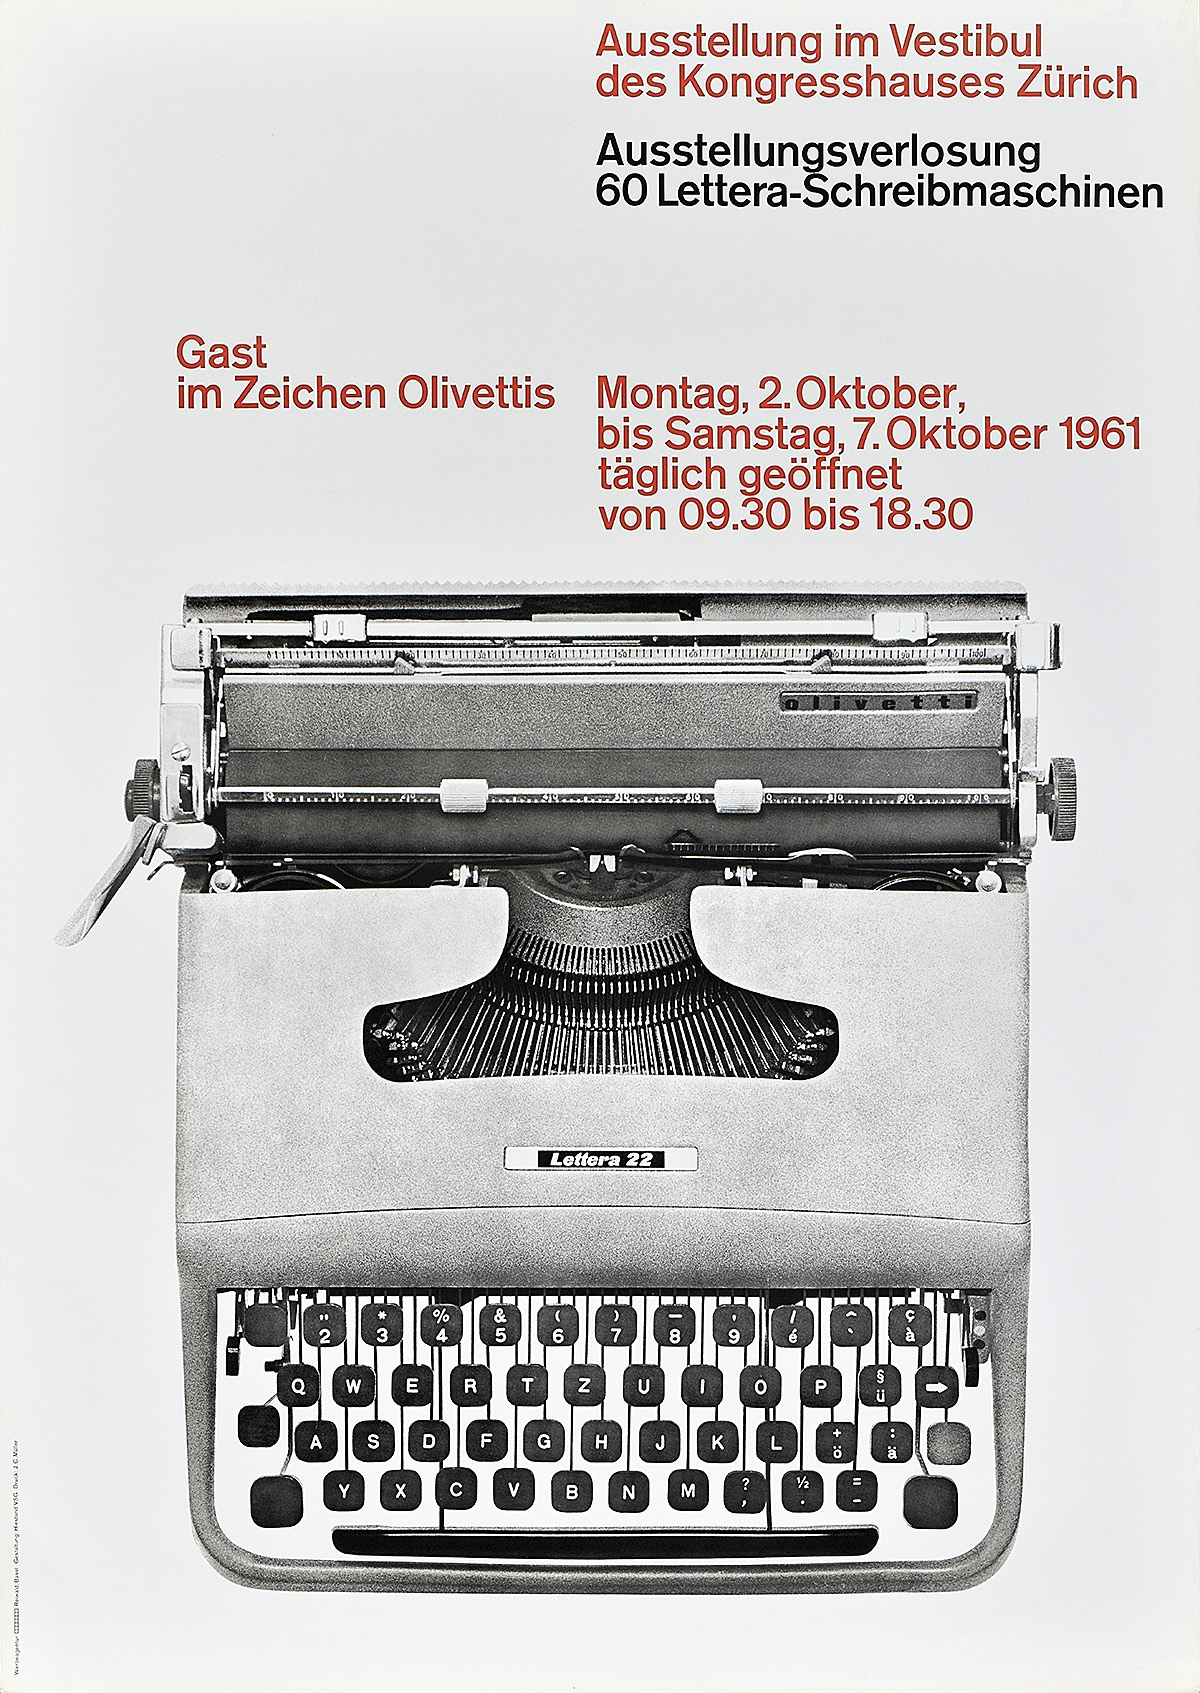 poster with of a black and white image of a typewriter and red and black text on a white background